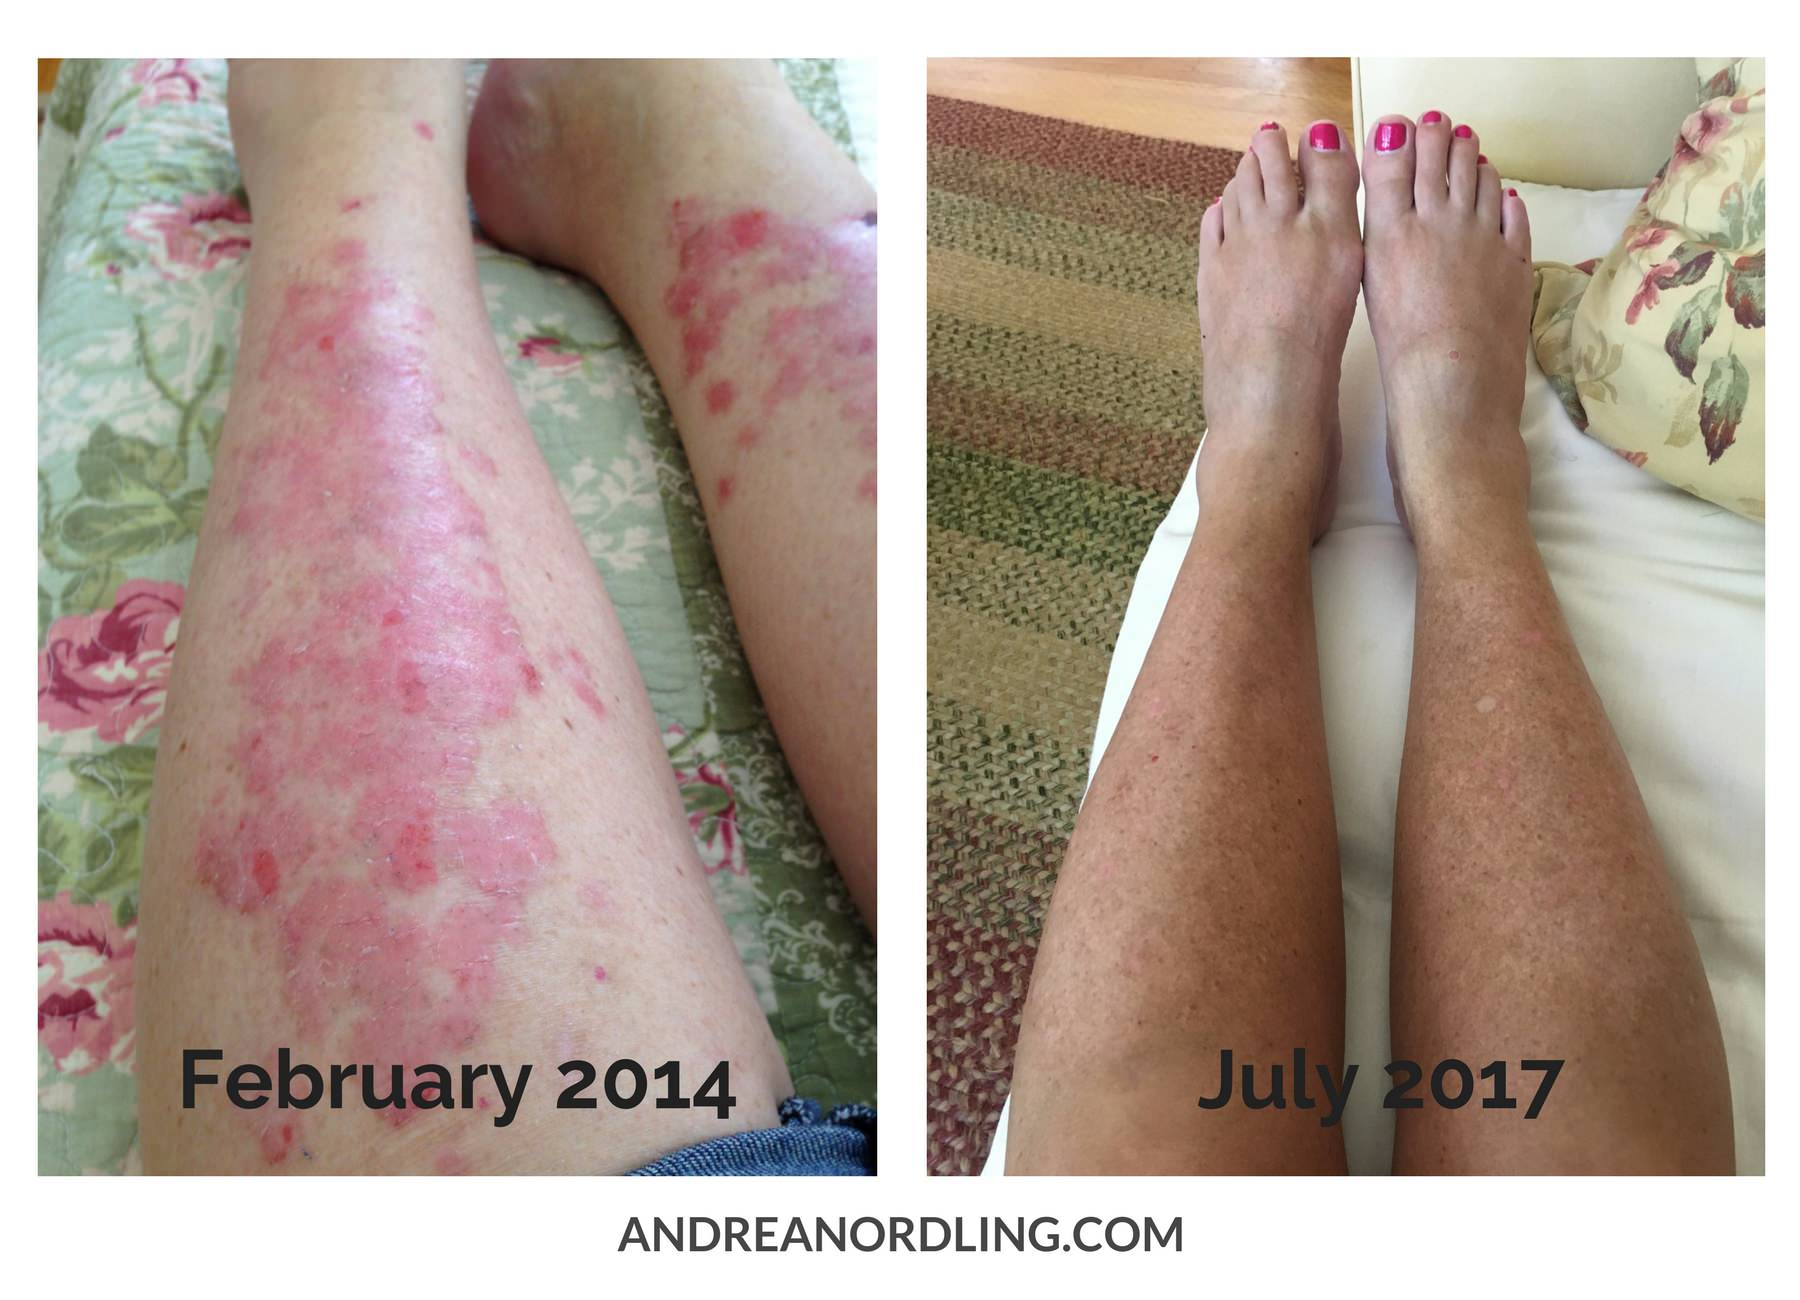 It is possible to reverse autoimmune disease, including psoriasis, with gut healing and a few key nutrients! Just look at these results from a client who had just resigned herself to the fact that she would have unsightly psoriasis all over her body unless she was willing to take scary prescriptions...but that wasn't the case, was it?!